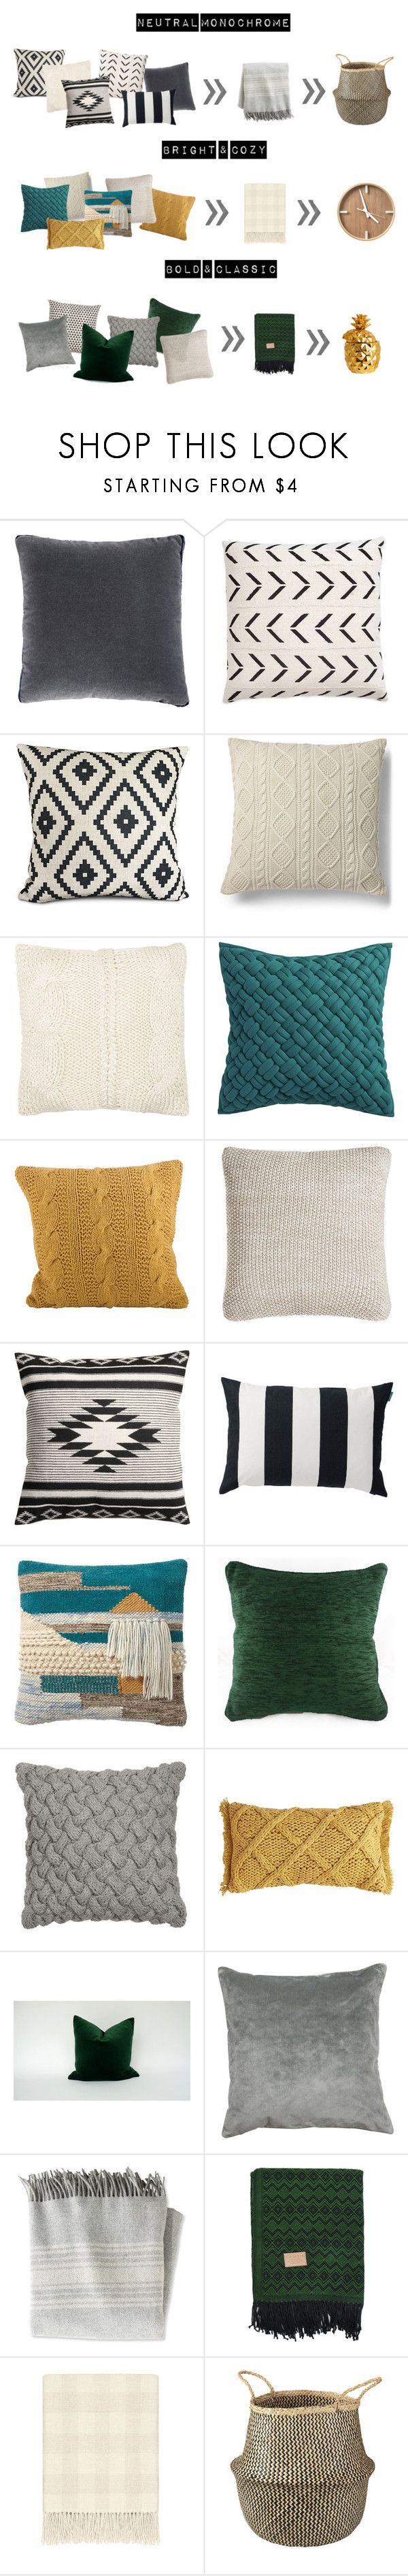 Fall pillow combinations by rowanmorrissy4 on Polyvore featuring interior, interiors, interior design, home, home decor, interior decorating, L.L.Bean, Kevin O'Brien, Sferra and Ethan Allen